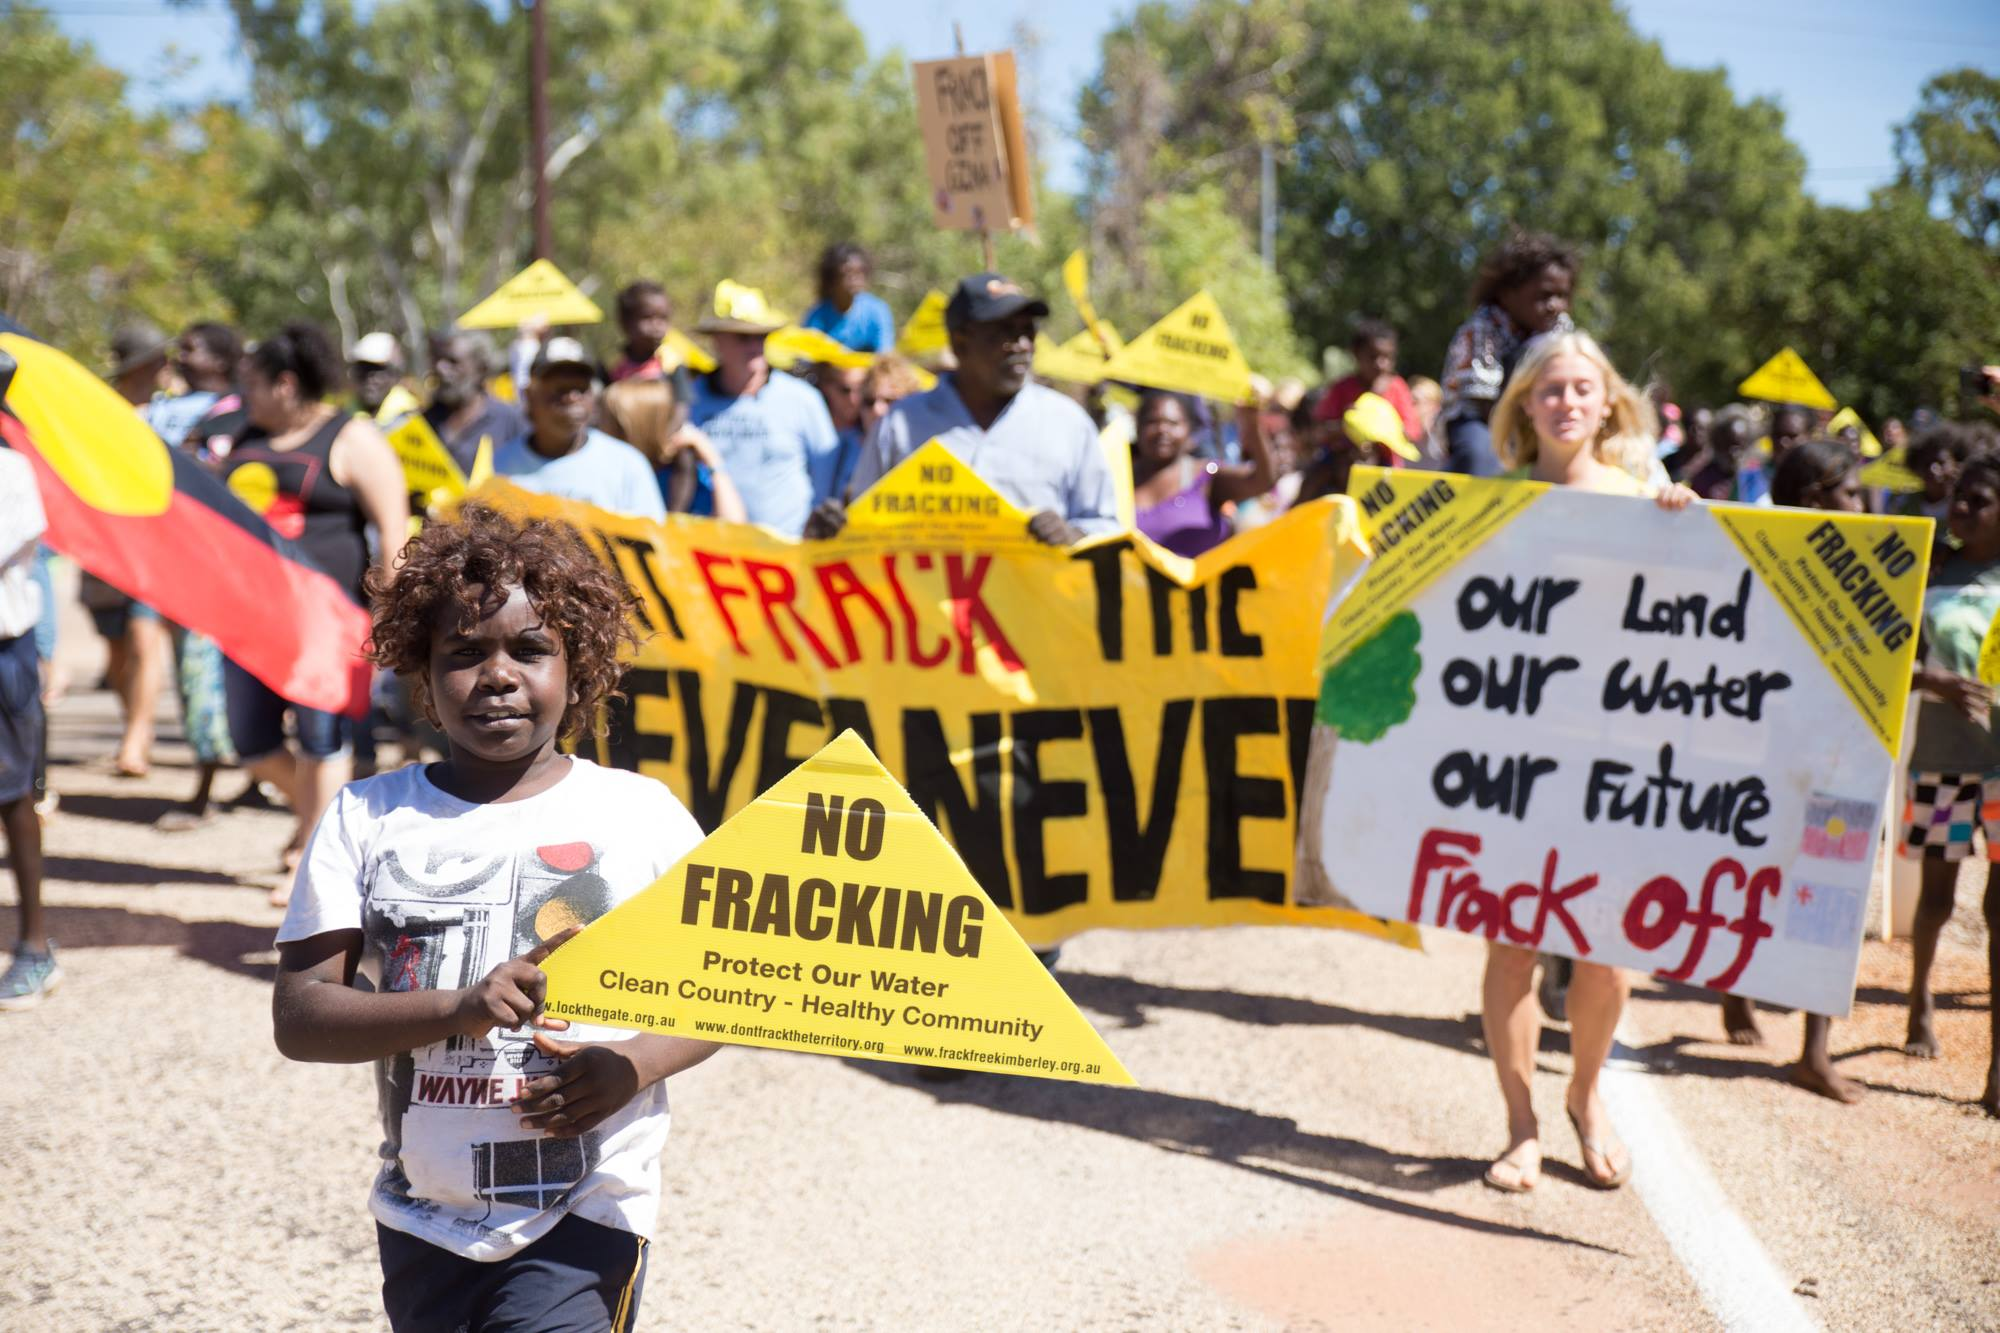 A small boy holds a No Fracking triangle in the foreground and the background is a group of people holding an anti-fracking banner